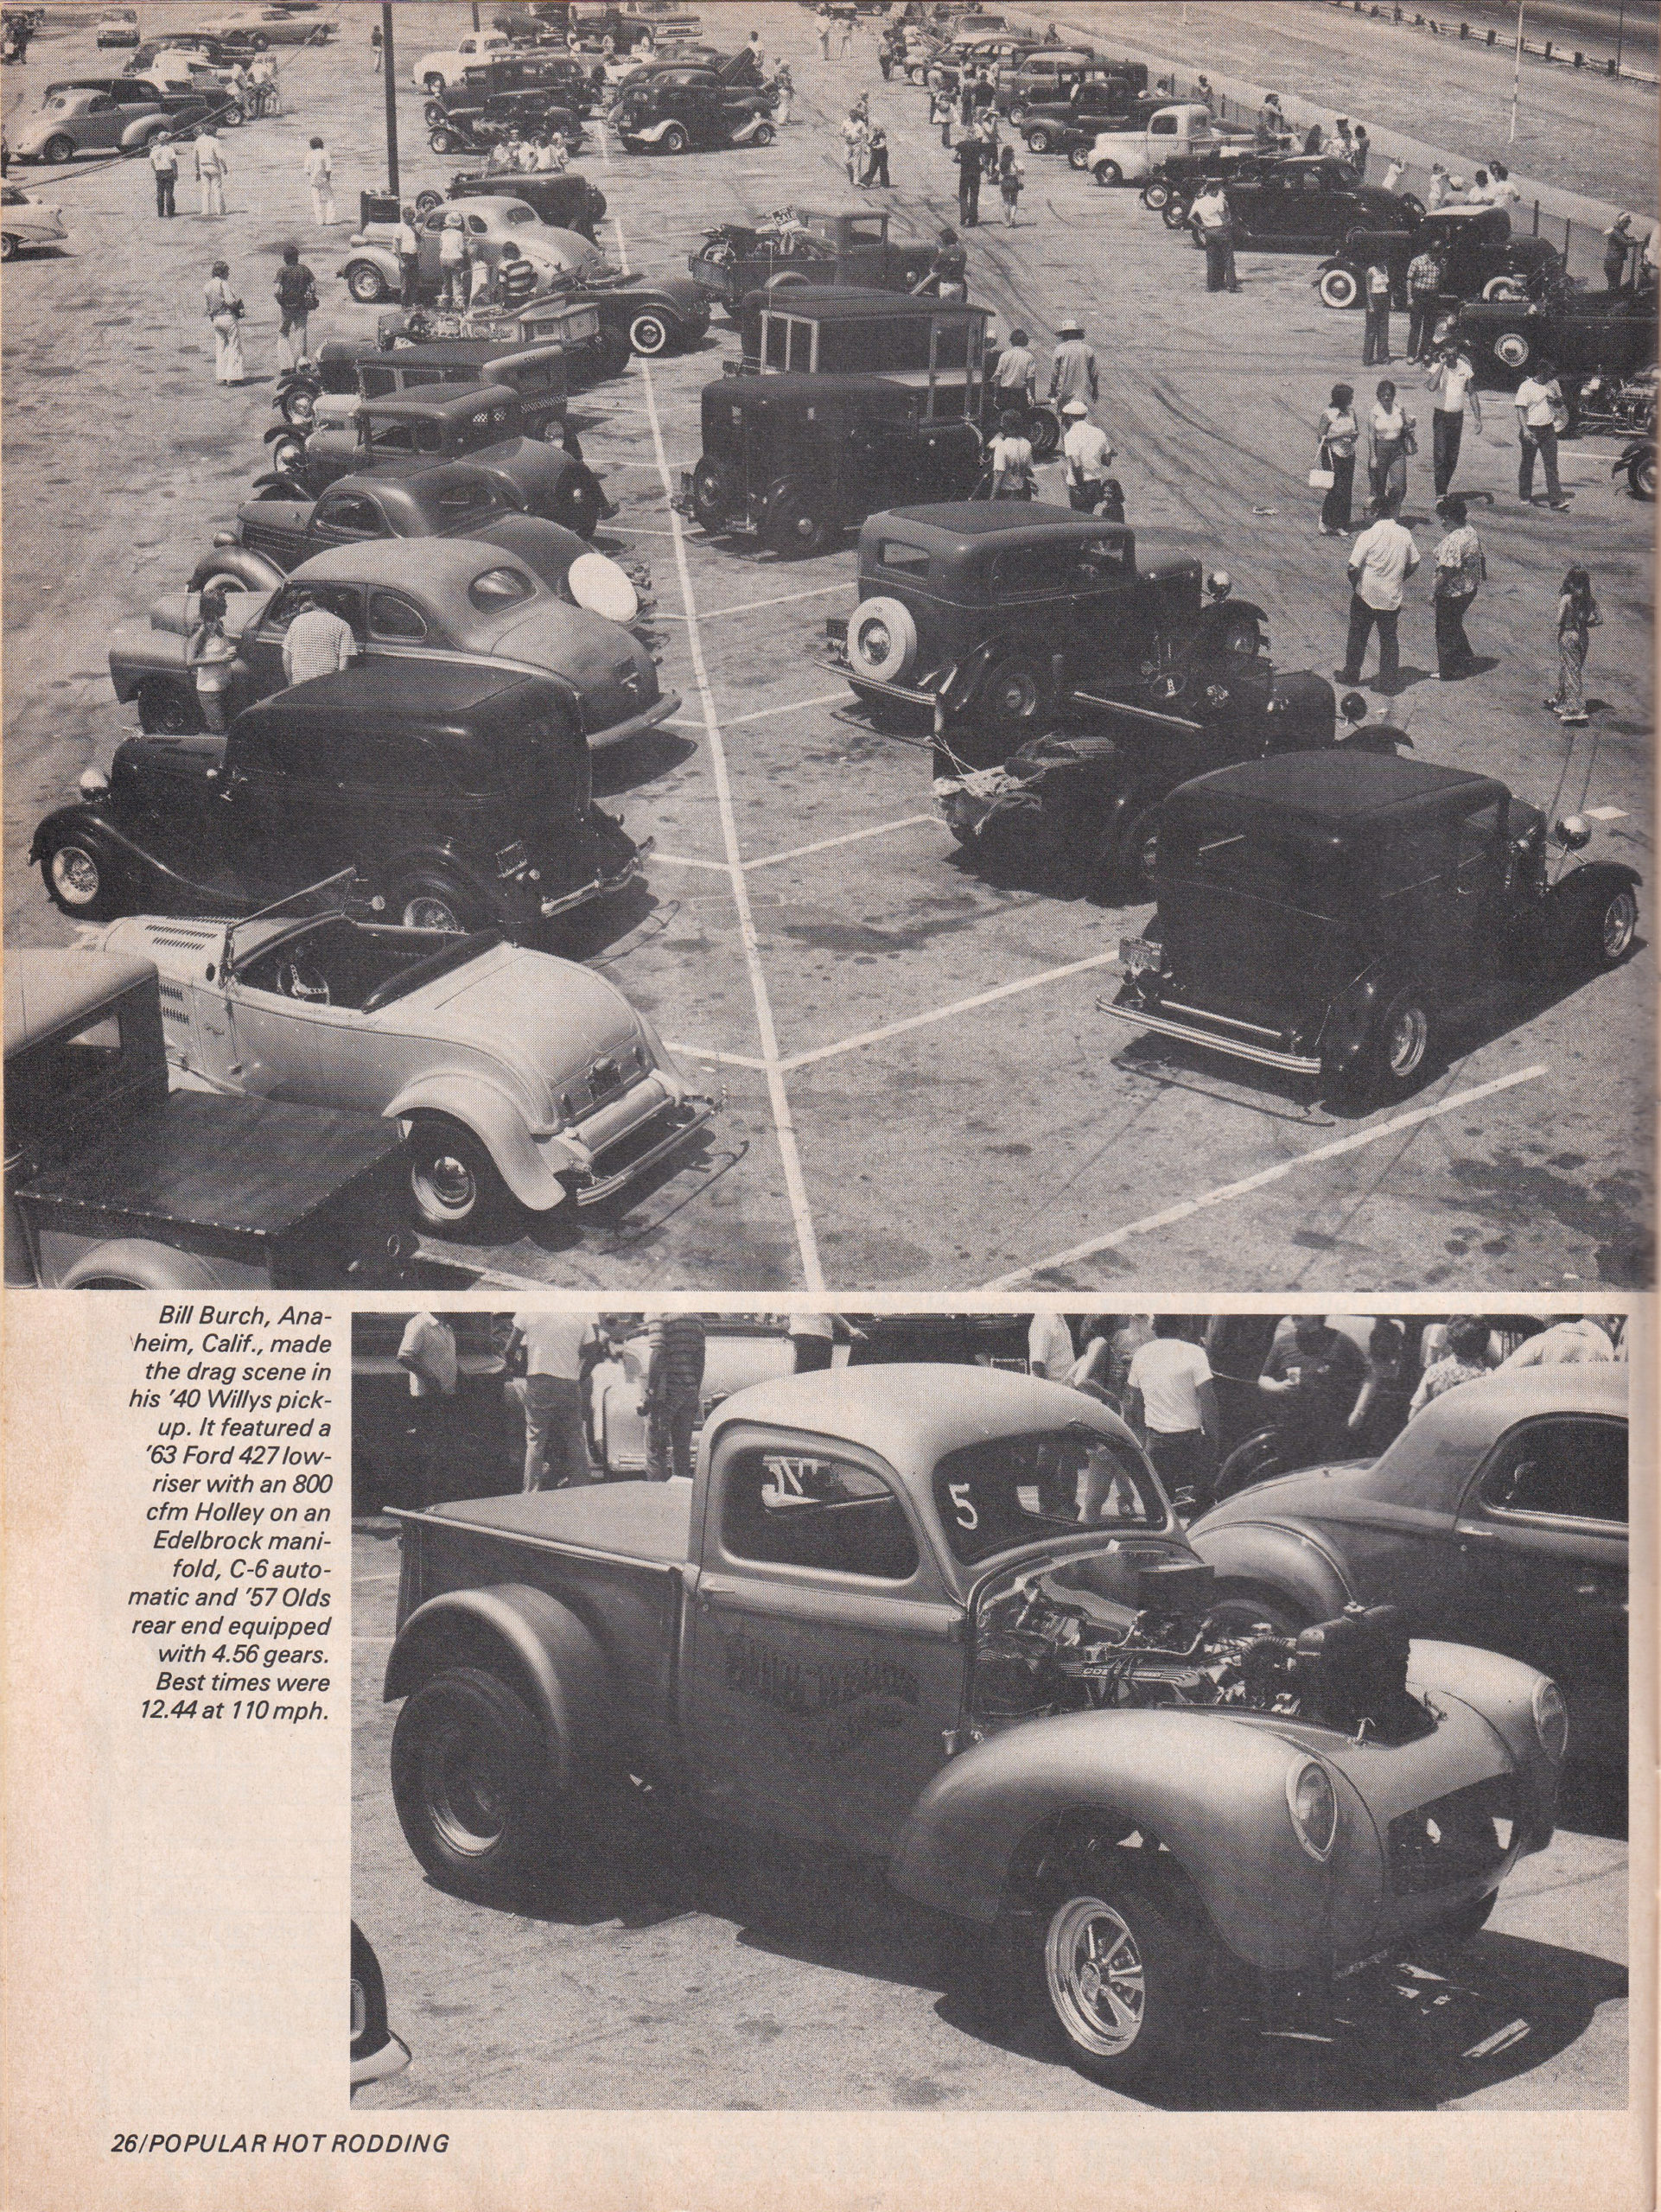 Street Rod Drag Race section from October 1975 issue of Popular Hot Rodding, page 1.